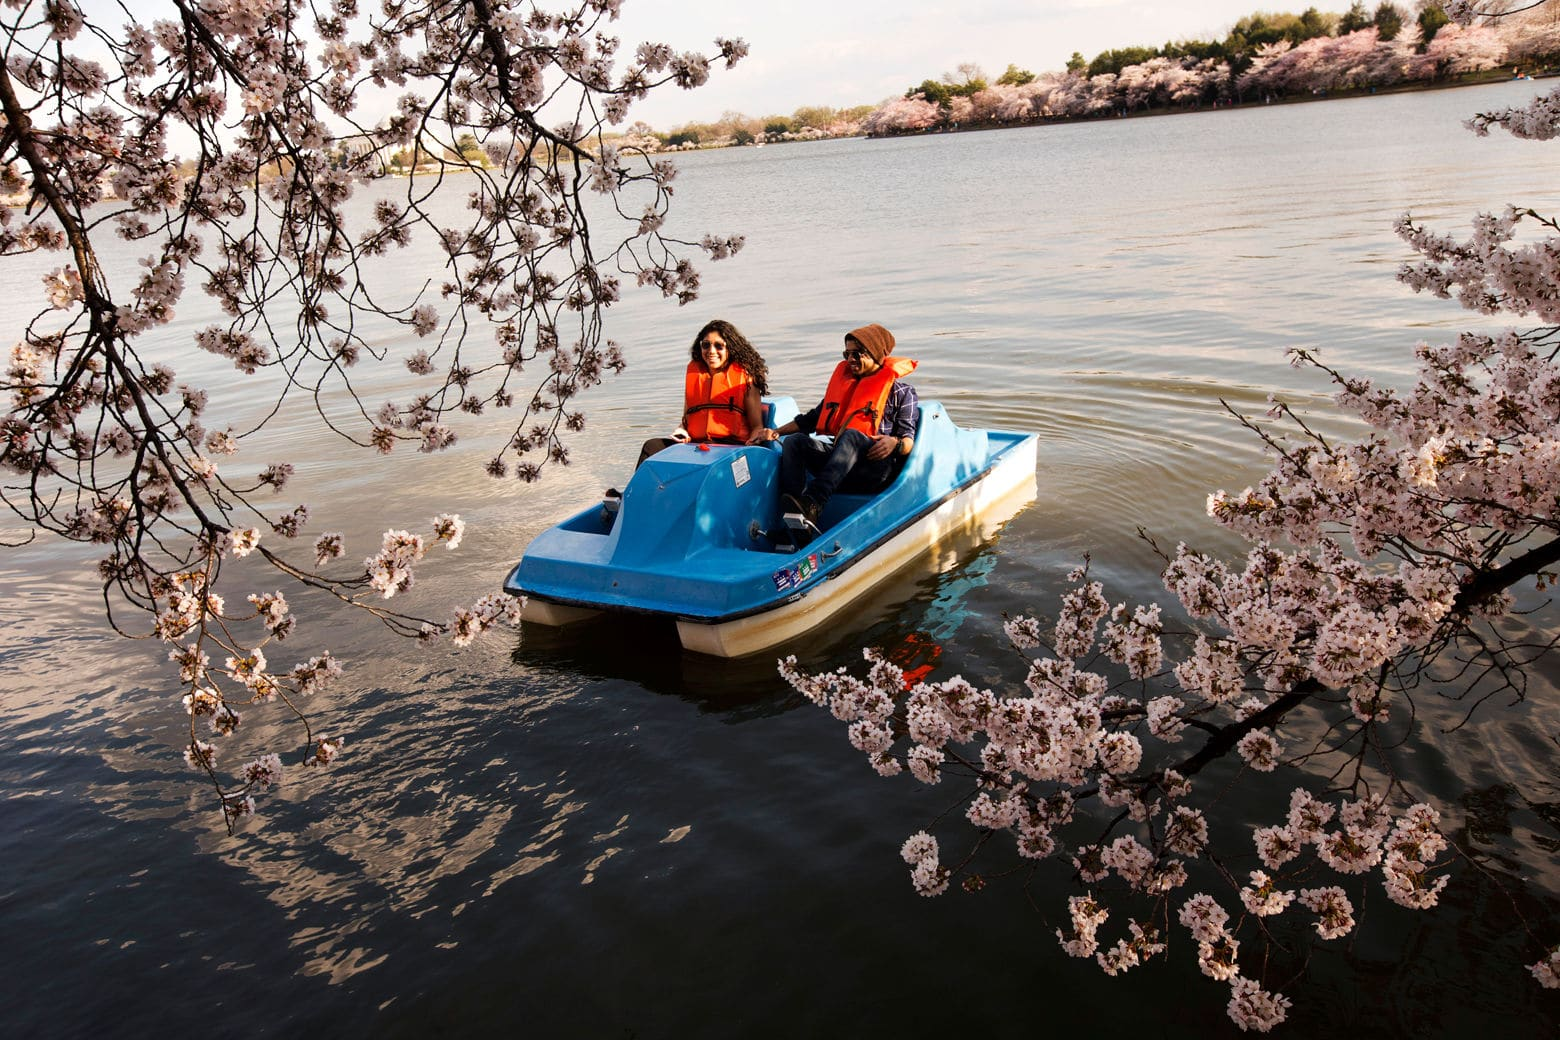 Helen Gonzales, 21, left, and Wagas Noor, 21, both of Washington, paddle boat among hanging cherry blossoms in bloom at the tidal basin in Washington, Wednesday, April 9, 2014. (AP Photo/Jacquelyn Martin)